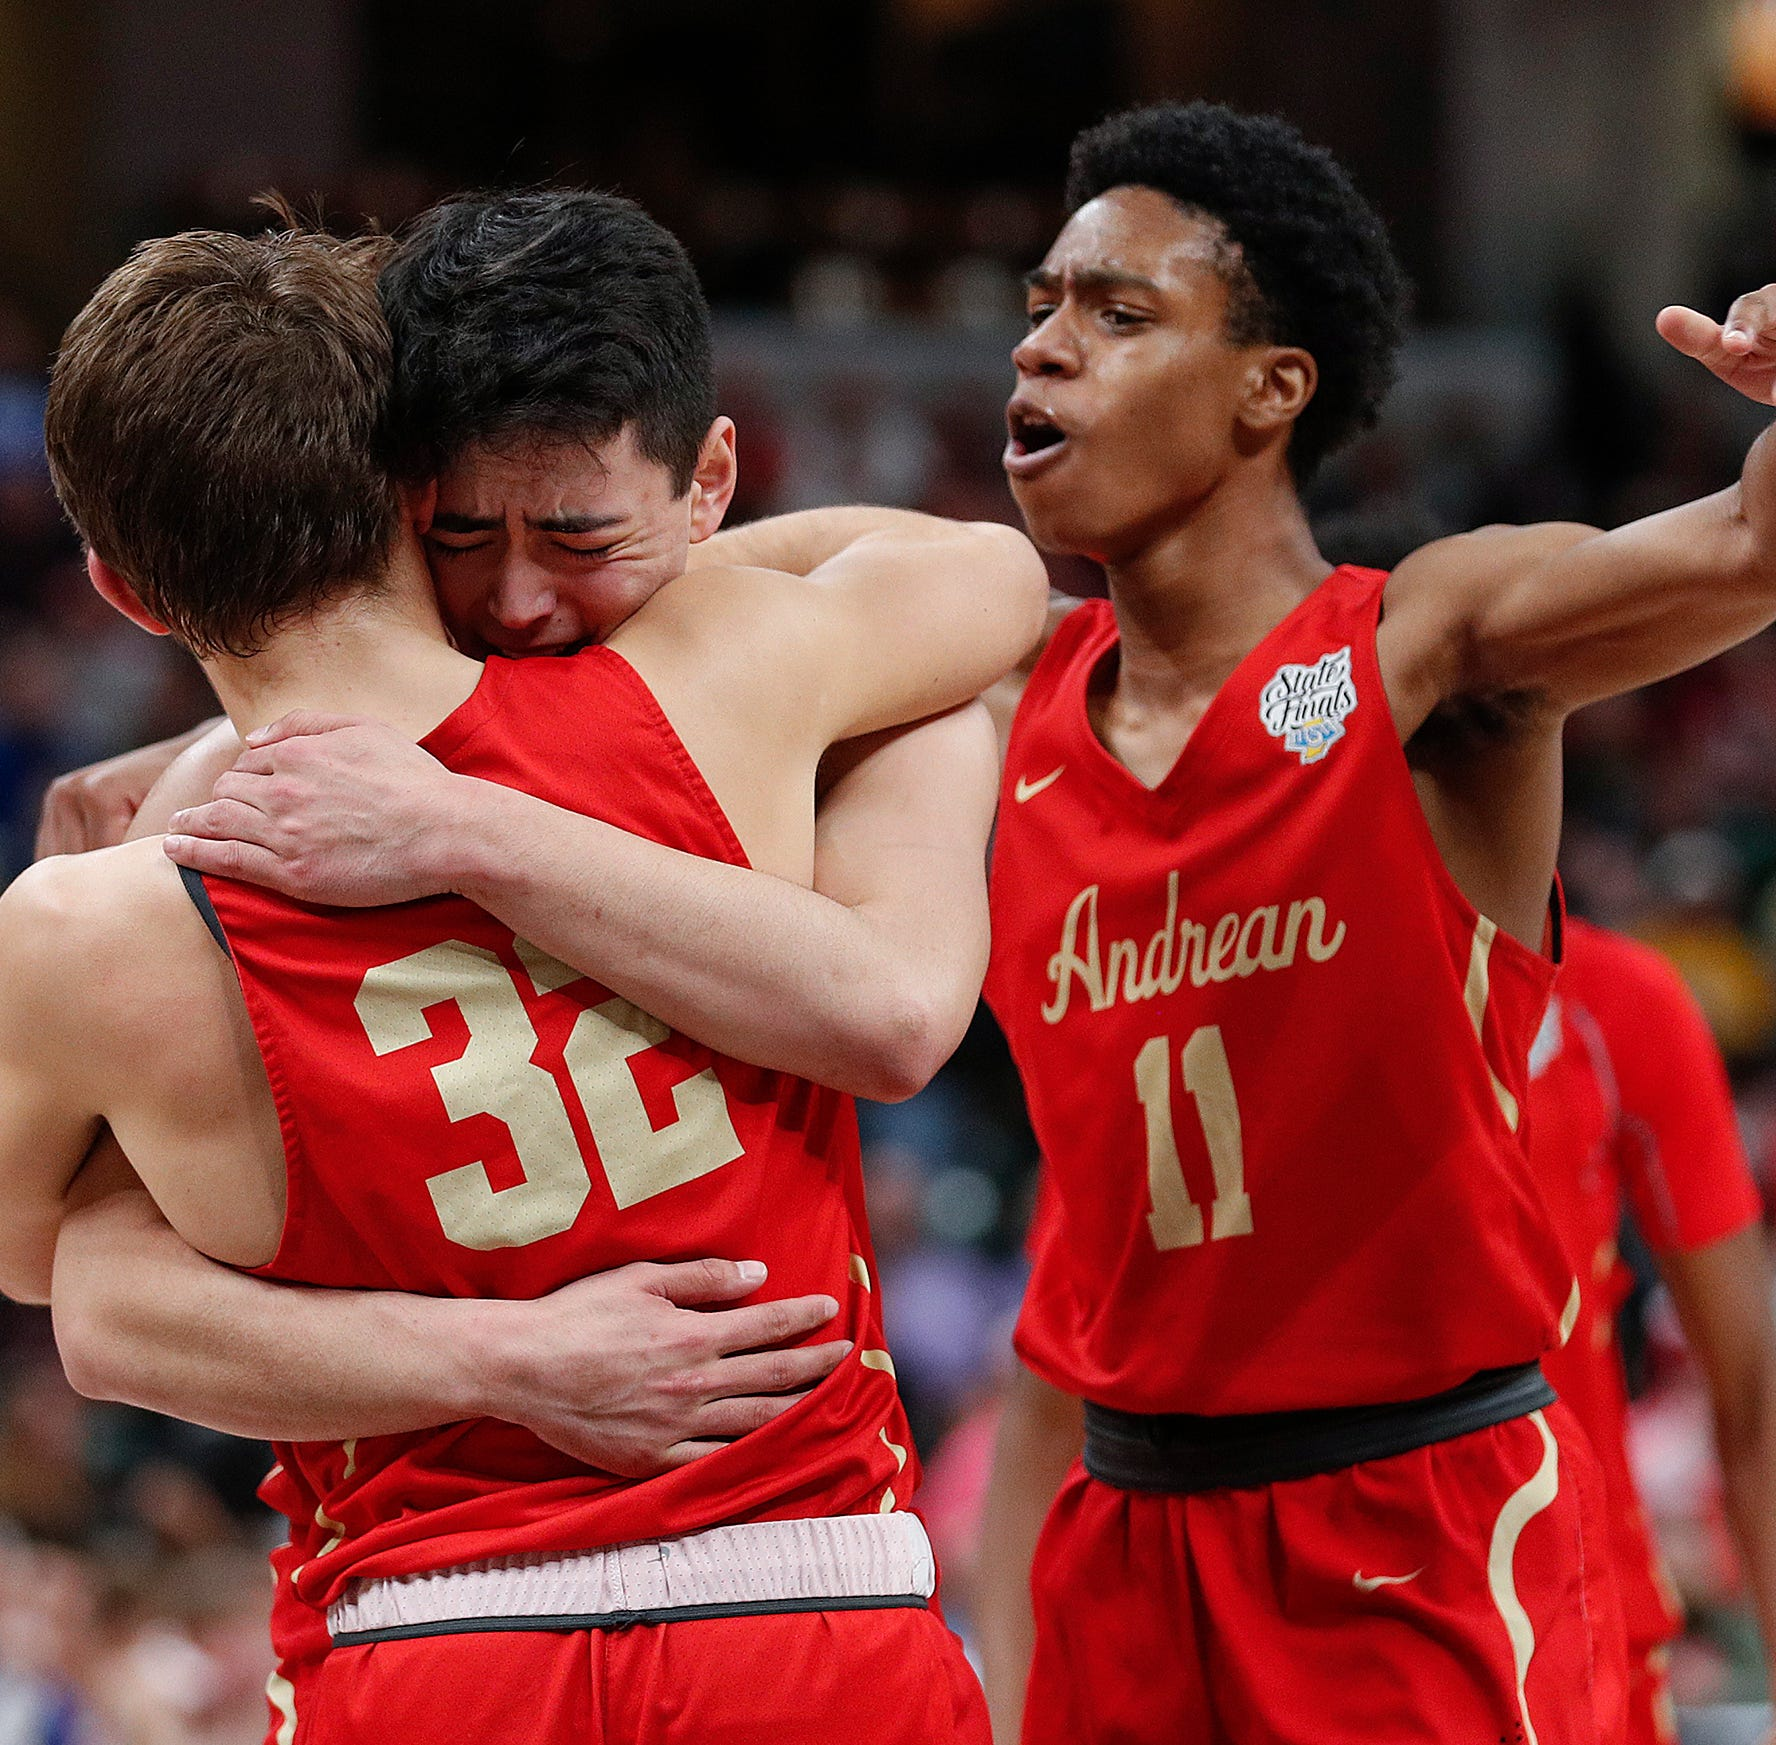 Andrean Fighting 59ers John Carrothers (4) hugs Nickolas Flesher (32) as Benjamin Jones (11) joins the celebration late in the second half of the IHSAA 2A Boys Basketball State Finals at Bankers Life Fieldhouse on Mar. 23, 2019. The Andrean Fighting 59ers defeated the Linton-Stockton Miners 59-54.